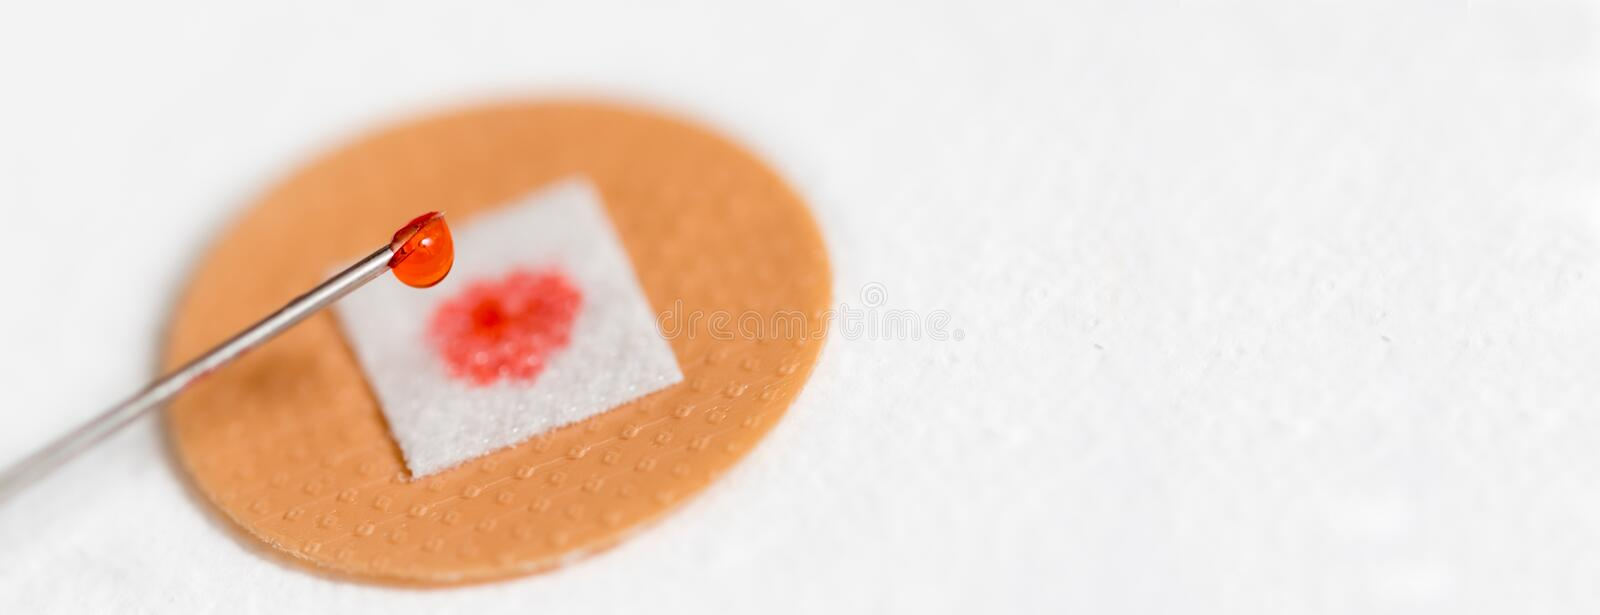 Drop of red liquid on an injection needle. Banner drop of red liquid on an injection needle and the blood on the plaster stock image